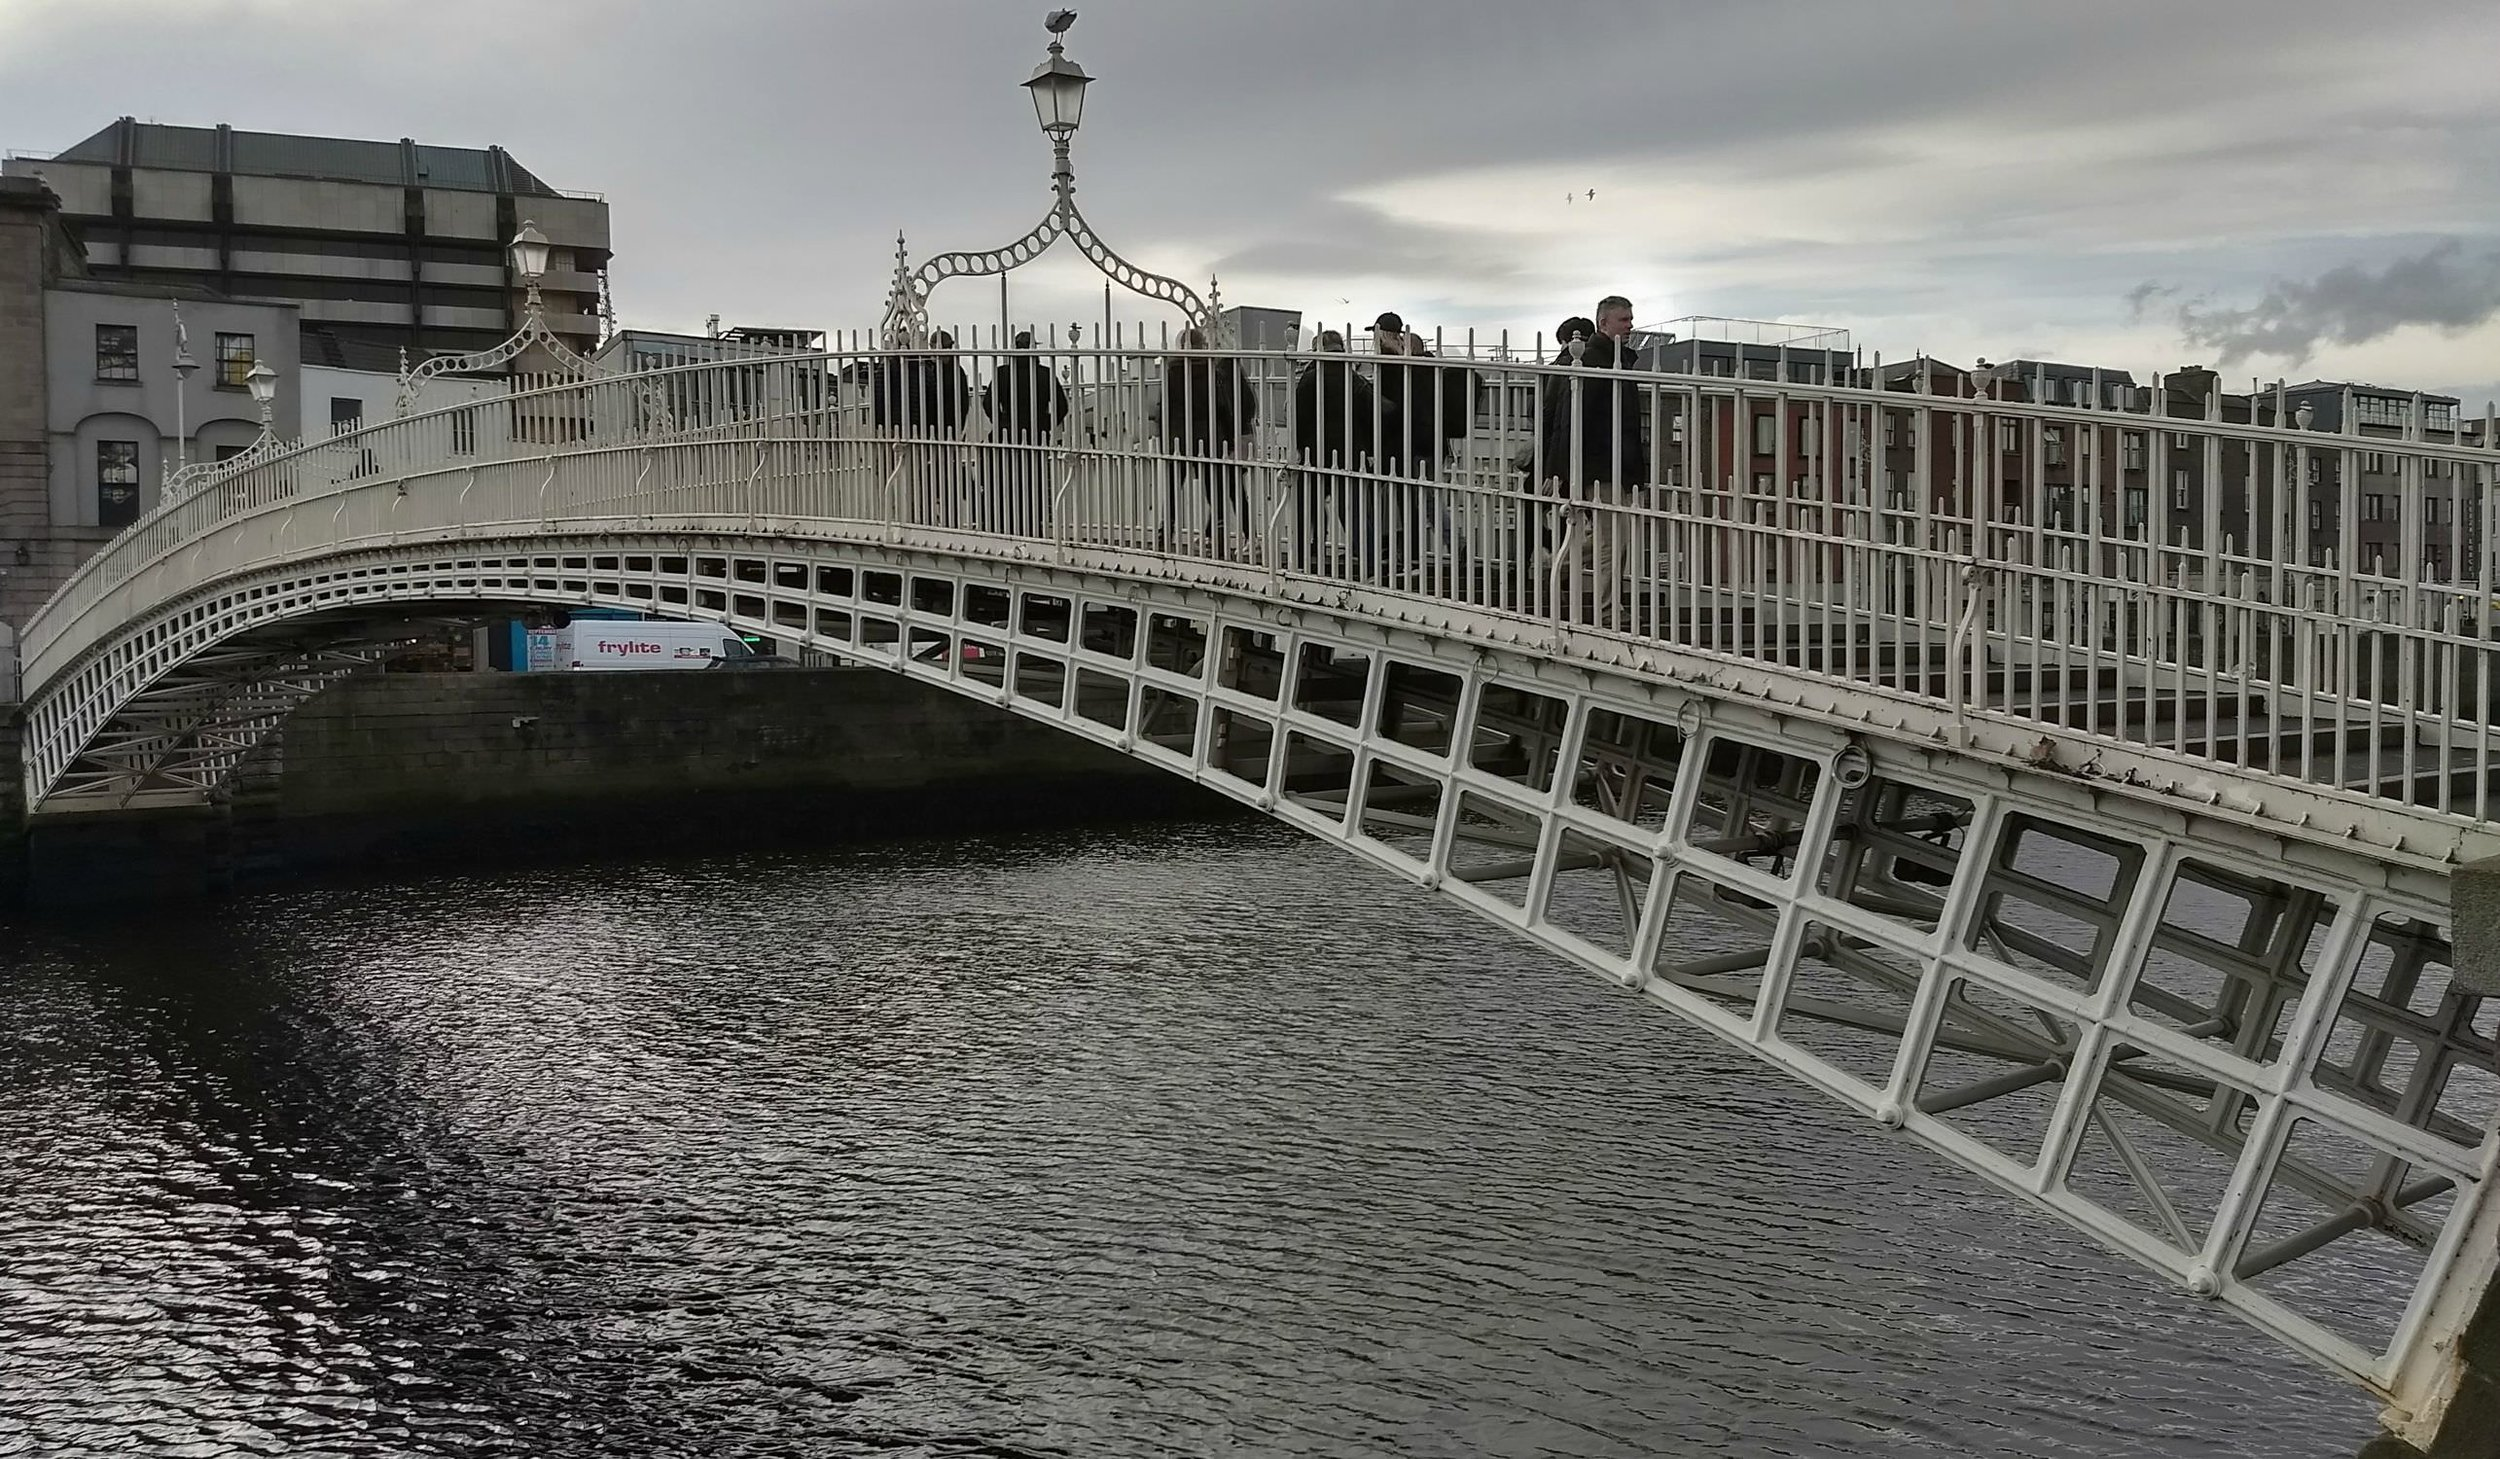 Take a stroll over the picturesque Ha'Penny Bridge which presides over the River Liffey.